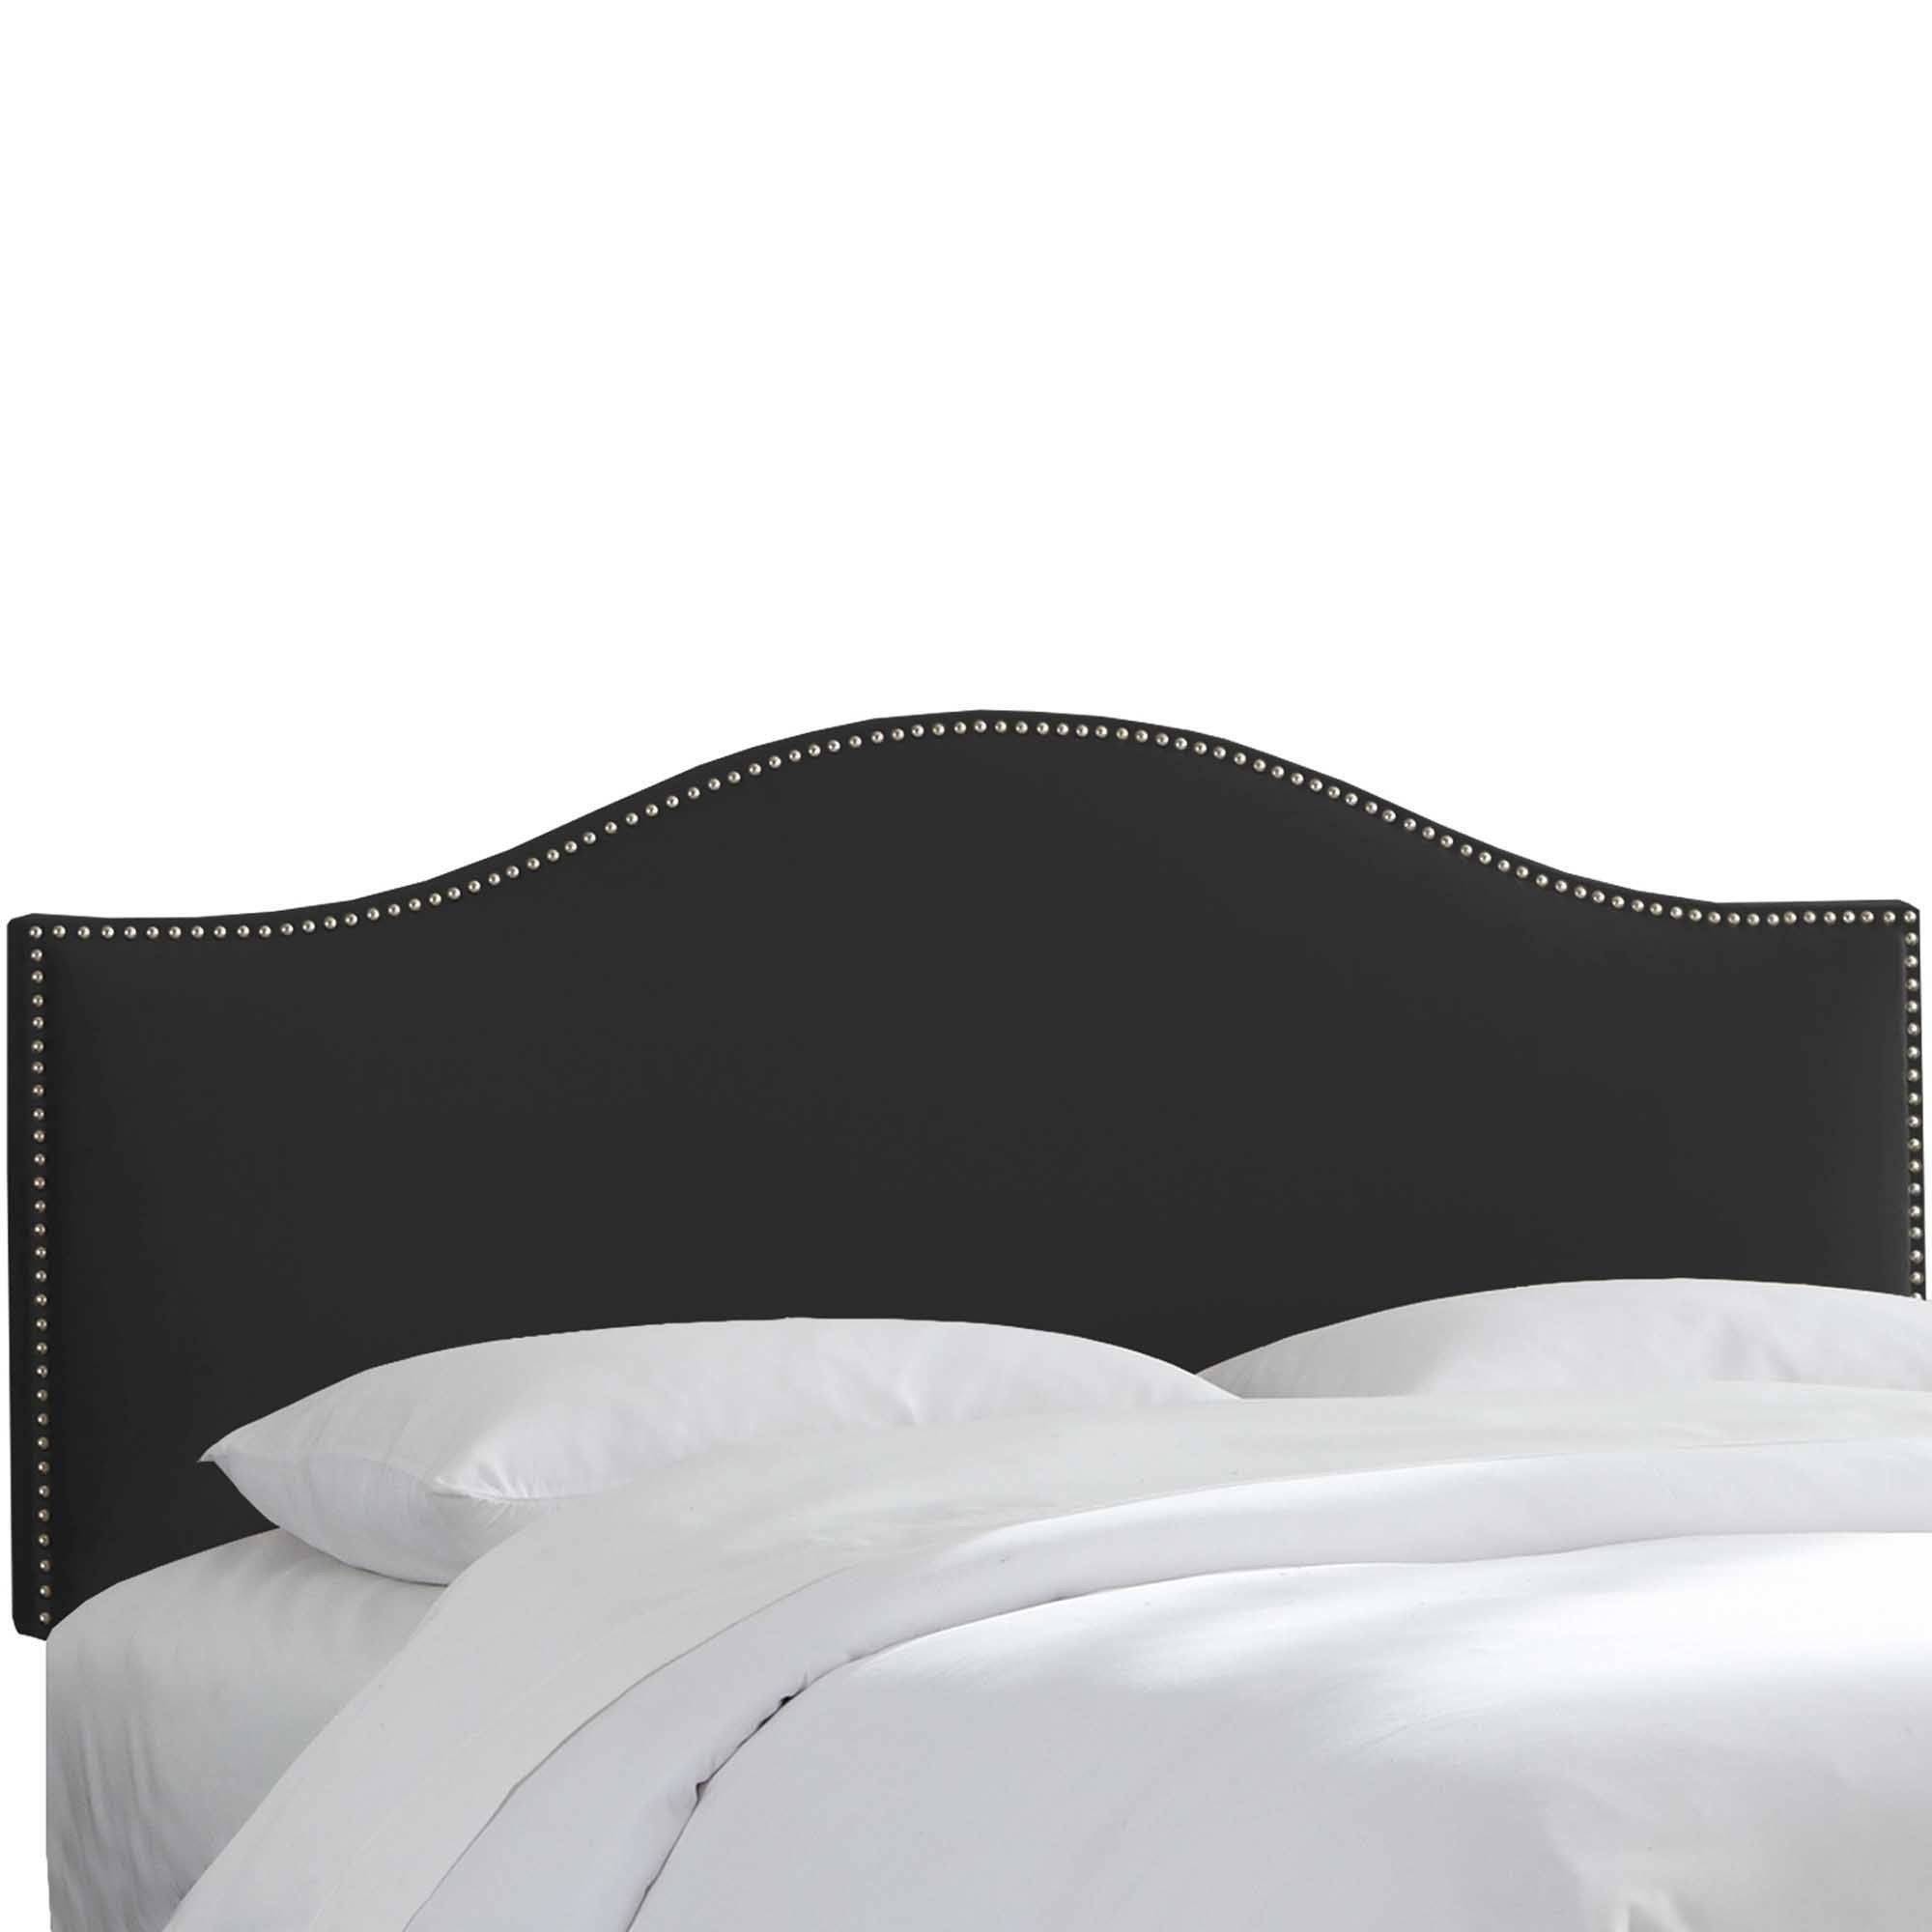 queen il buttoned headboard listing crystal fullxfull black velvet with bed deep zoom jrvl type